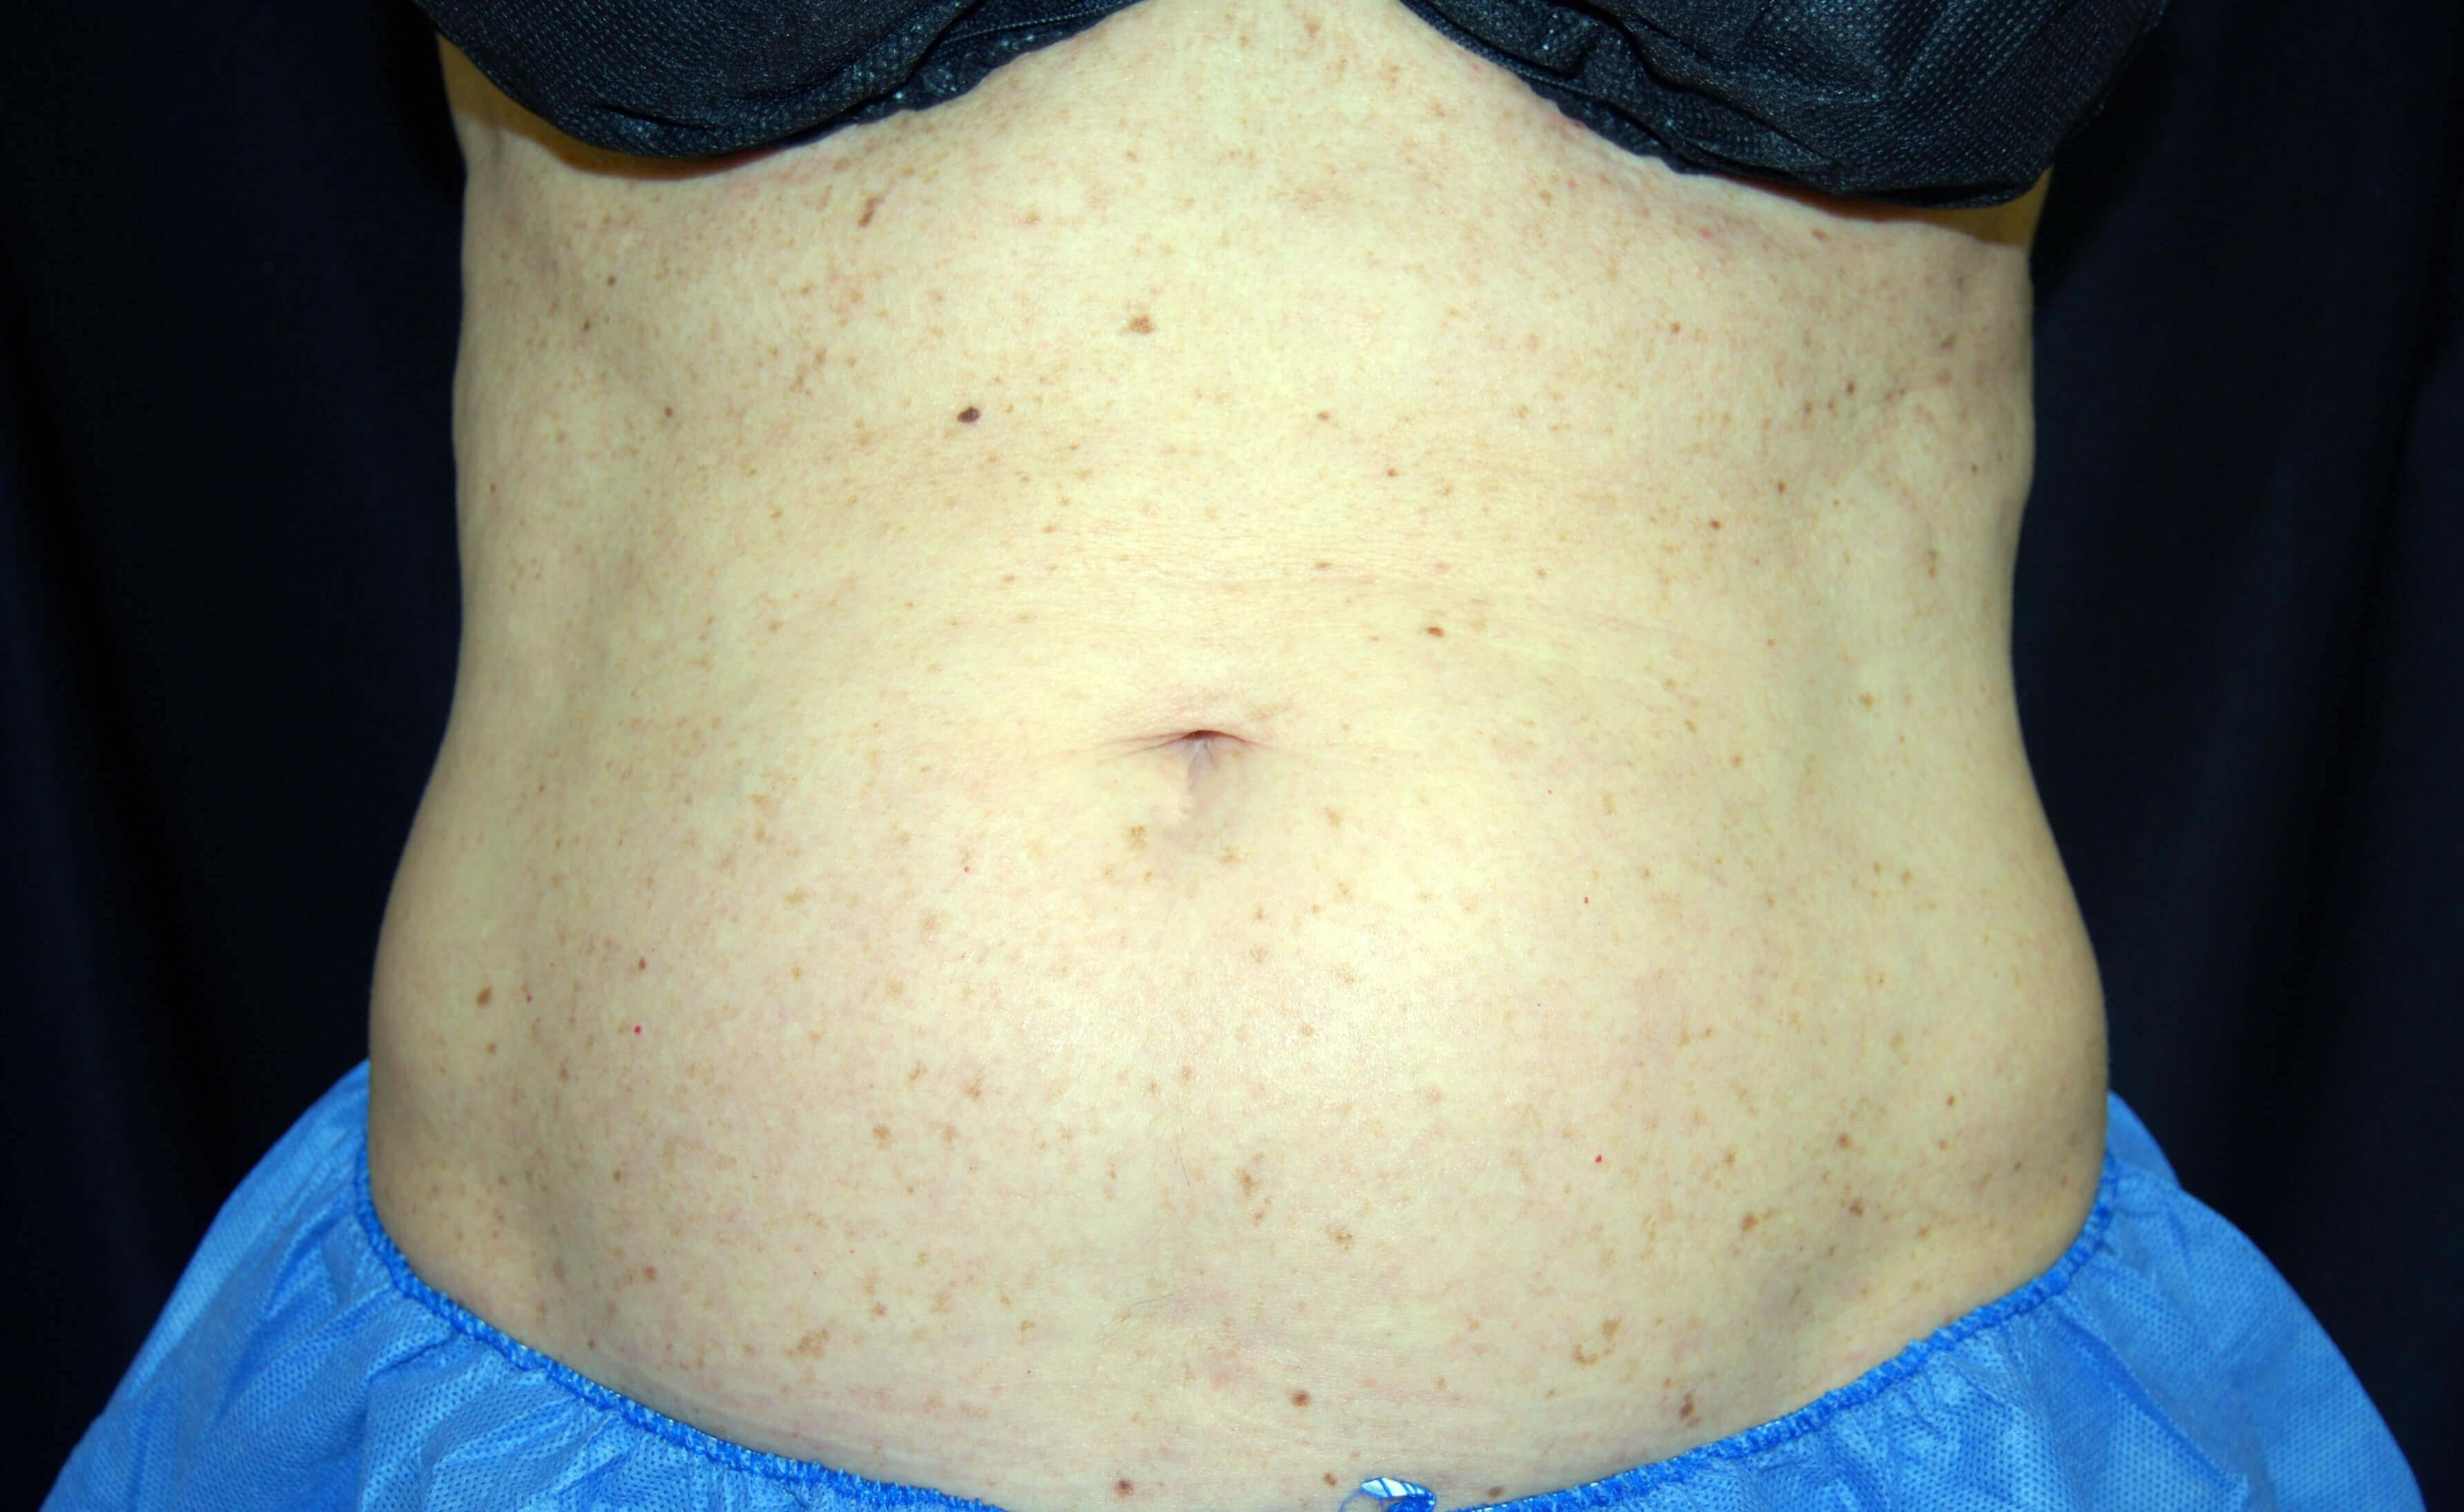 Front View Before CoolSculpting